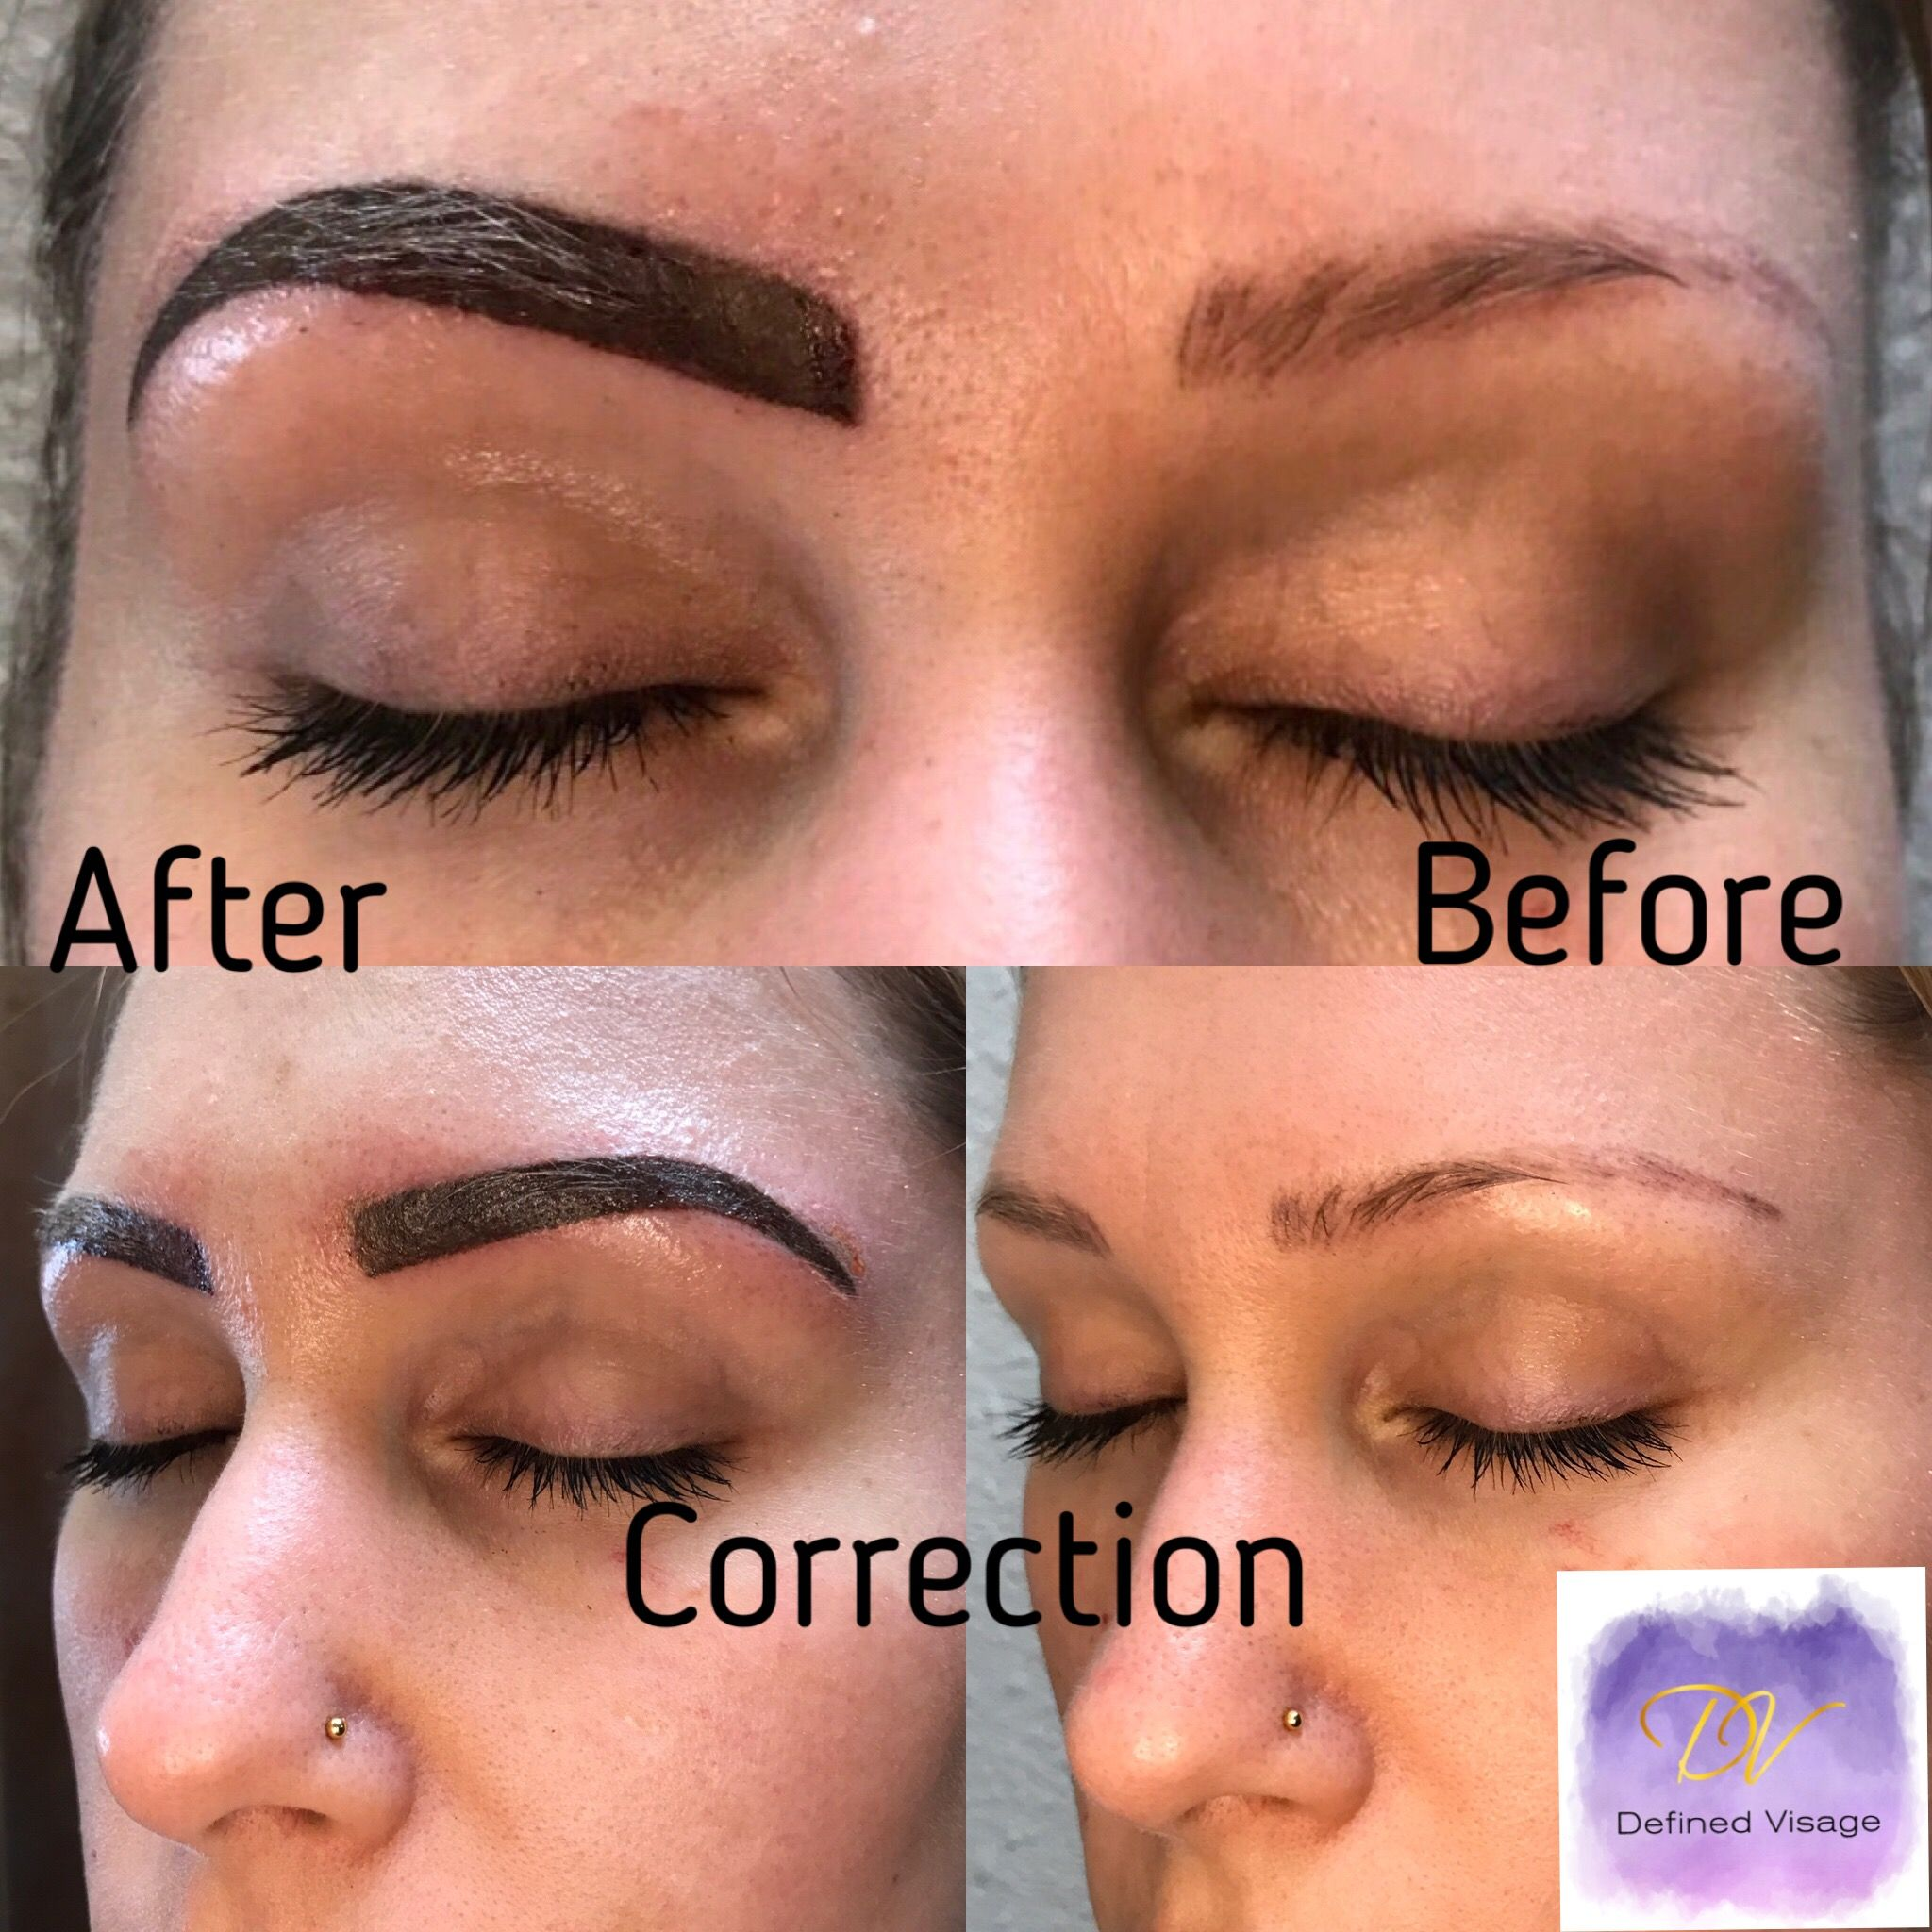 Ombré completed to correct bad shape and microblading